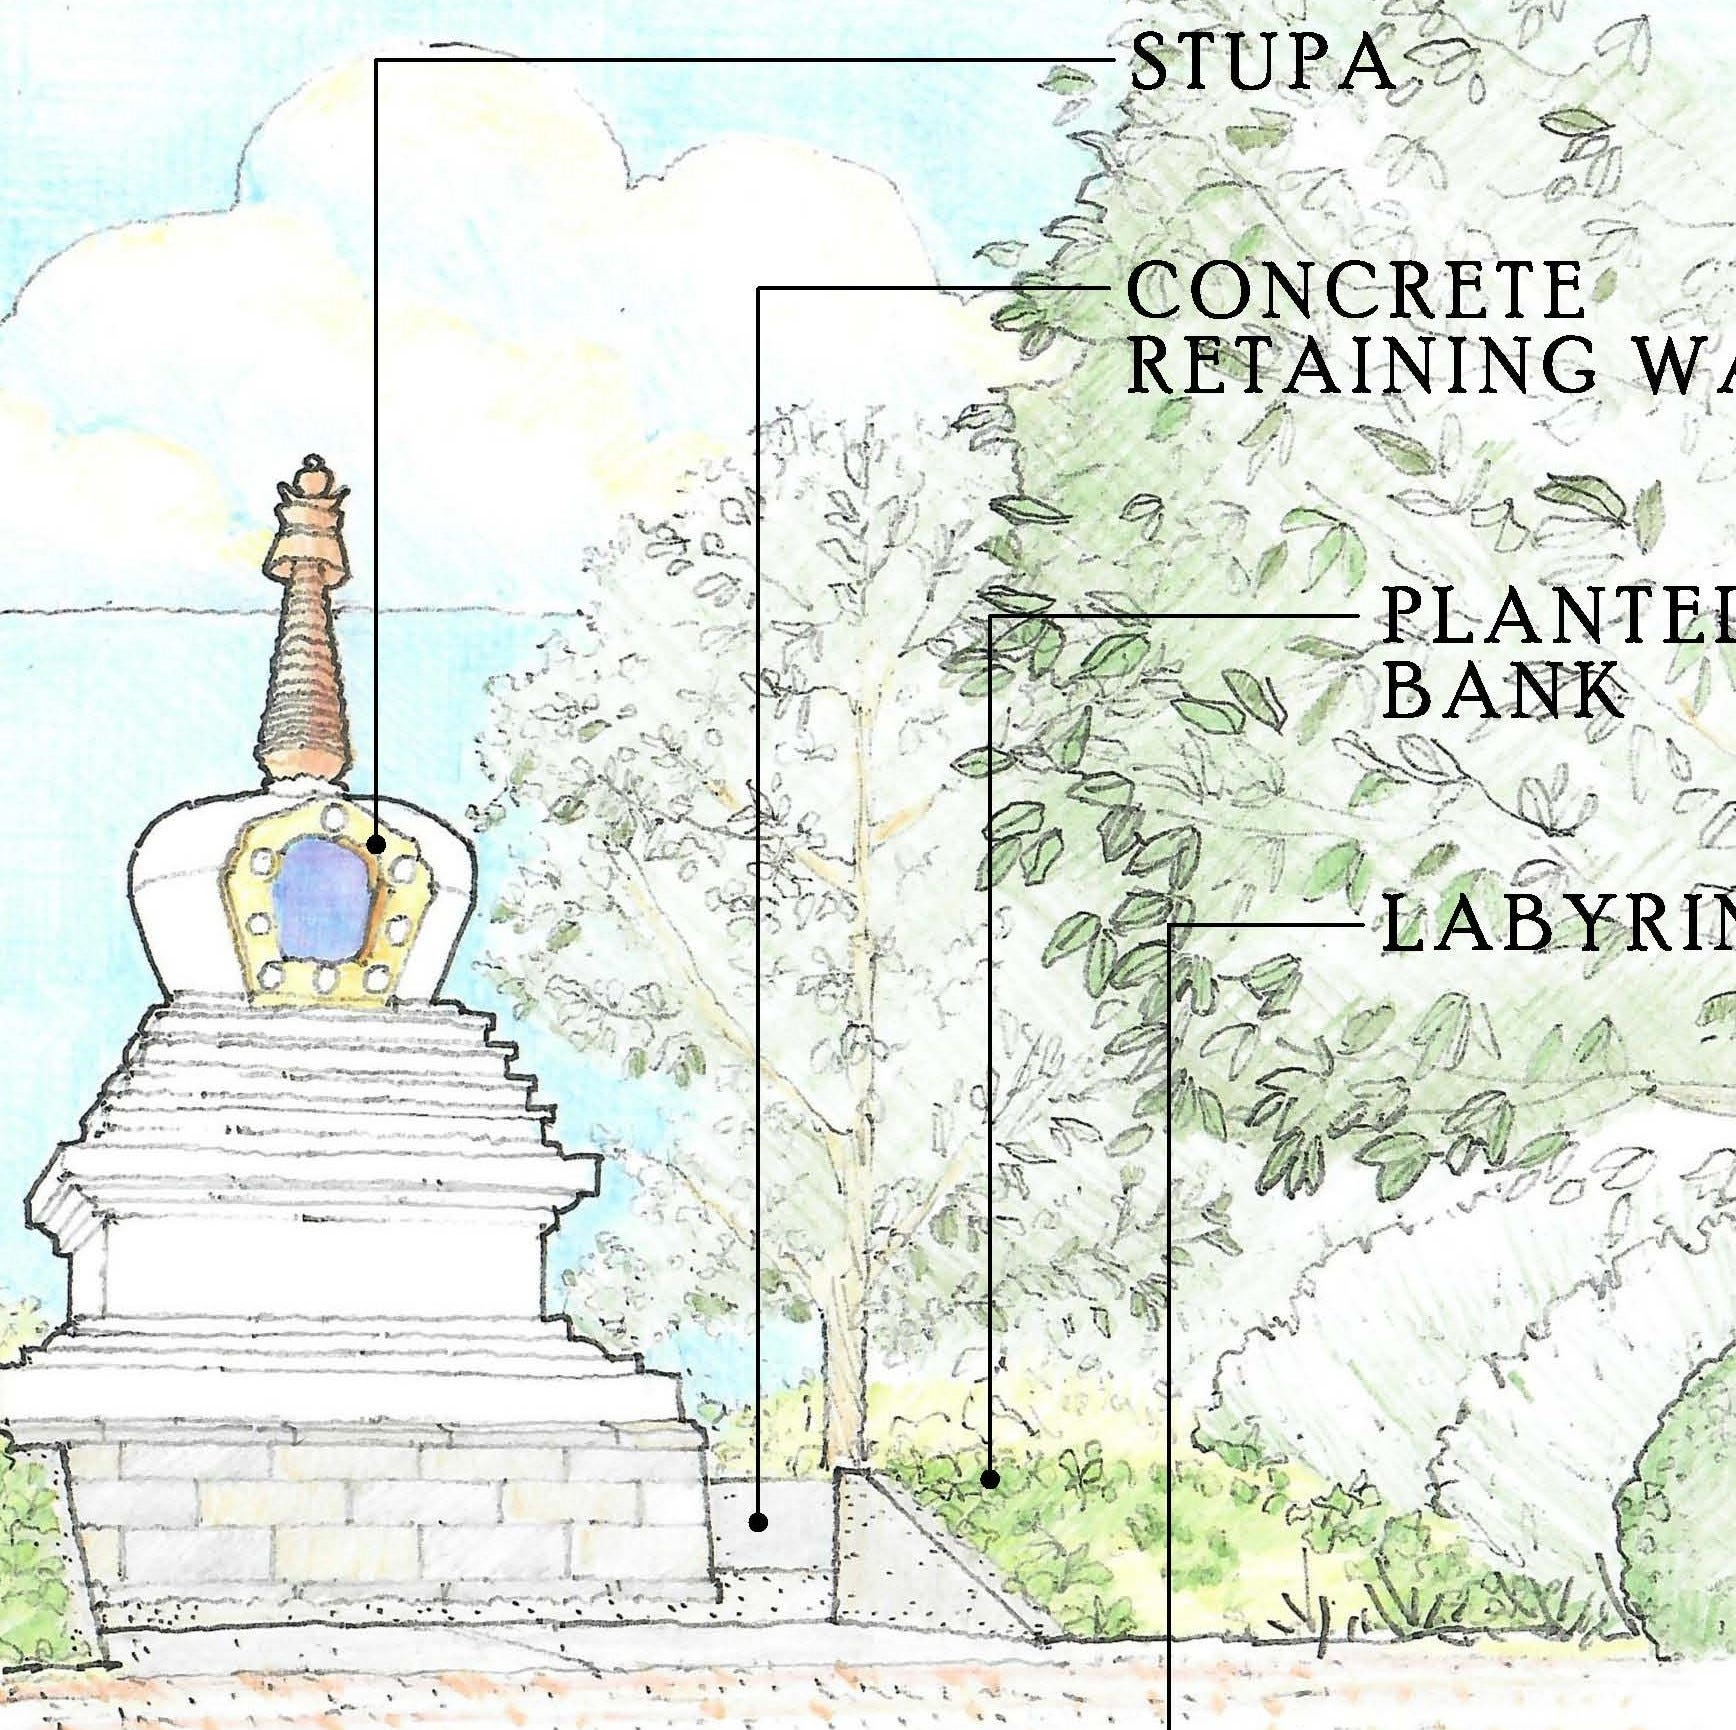 Spalding is building a meditation garden complete with a labyrinth